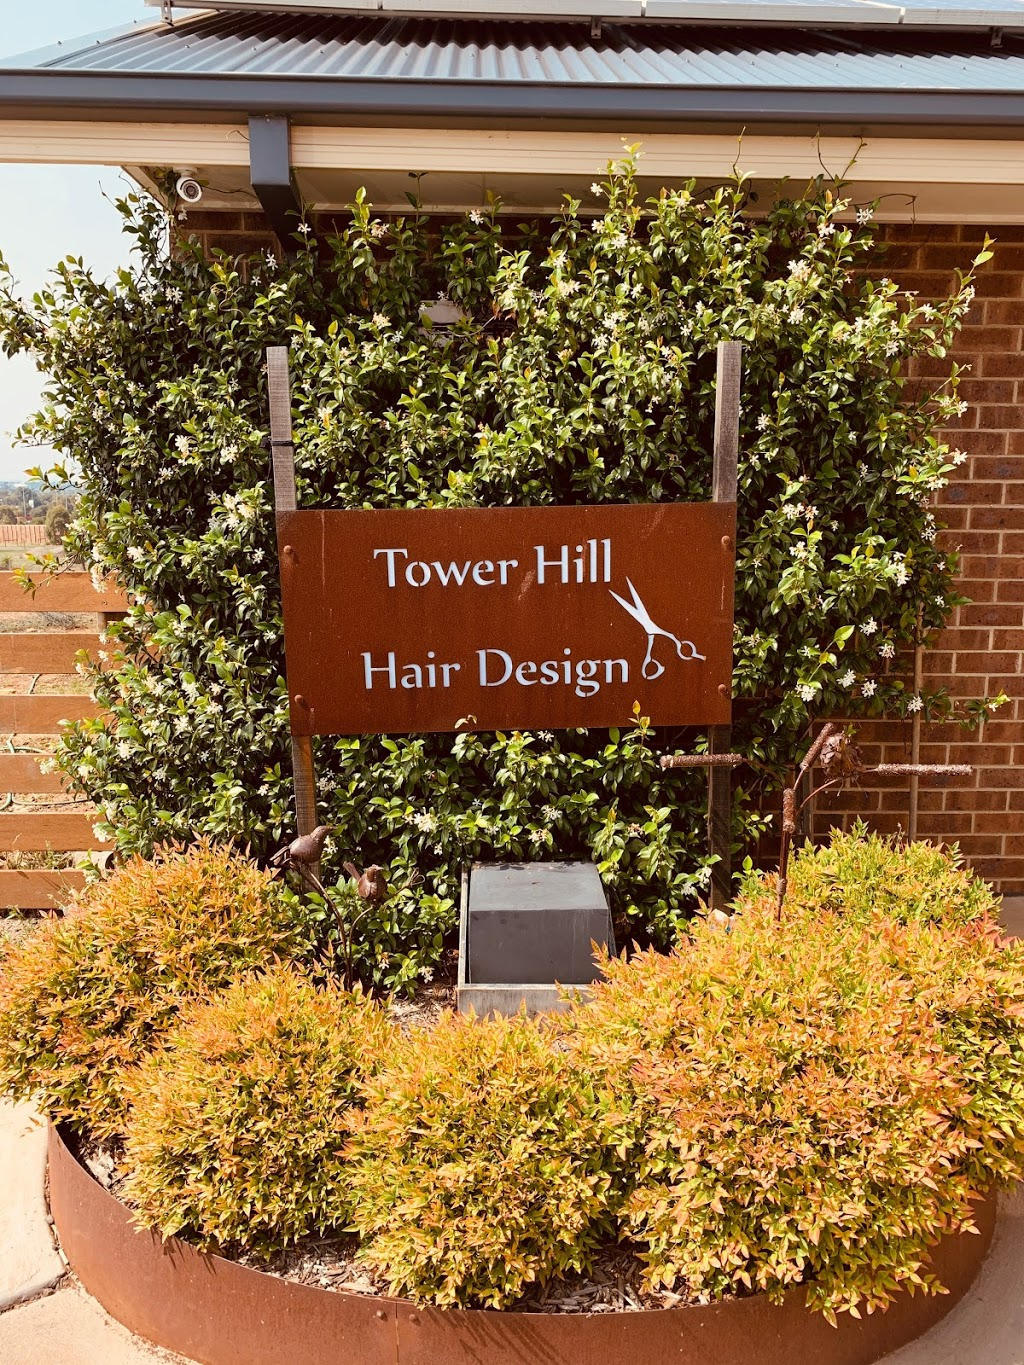 Tower Hill Hair Design | hair care | 245 Tower Hill Dr, Lovely Banks VIC 3213, Australia | 0352754049 OR +61 3 5275 4049